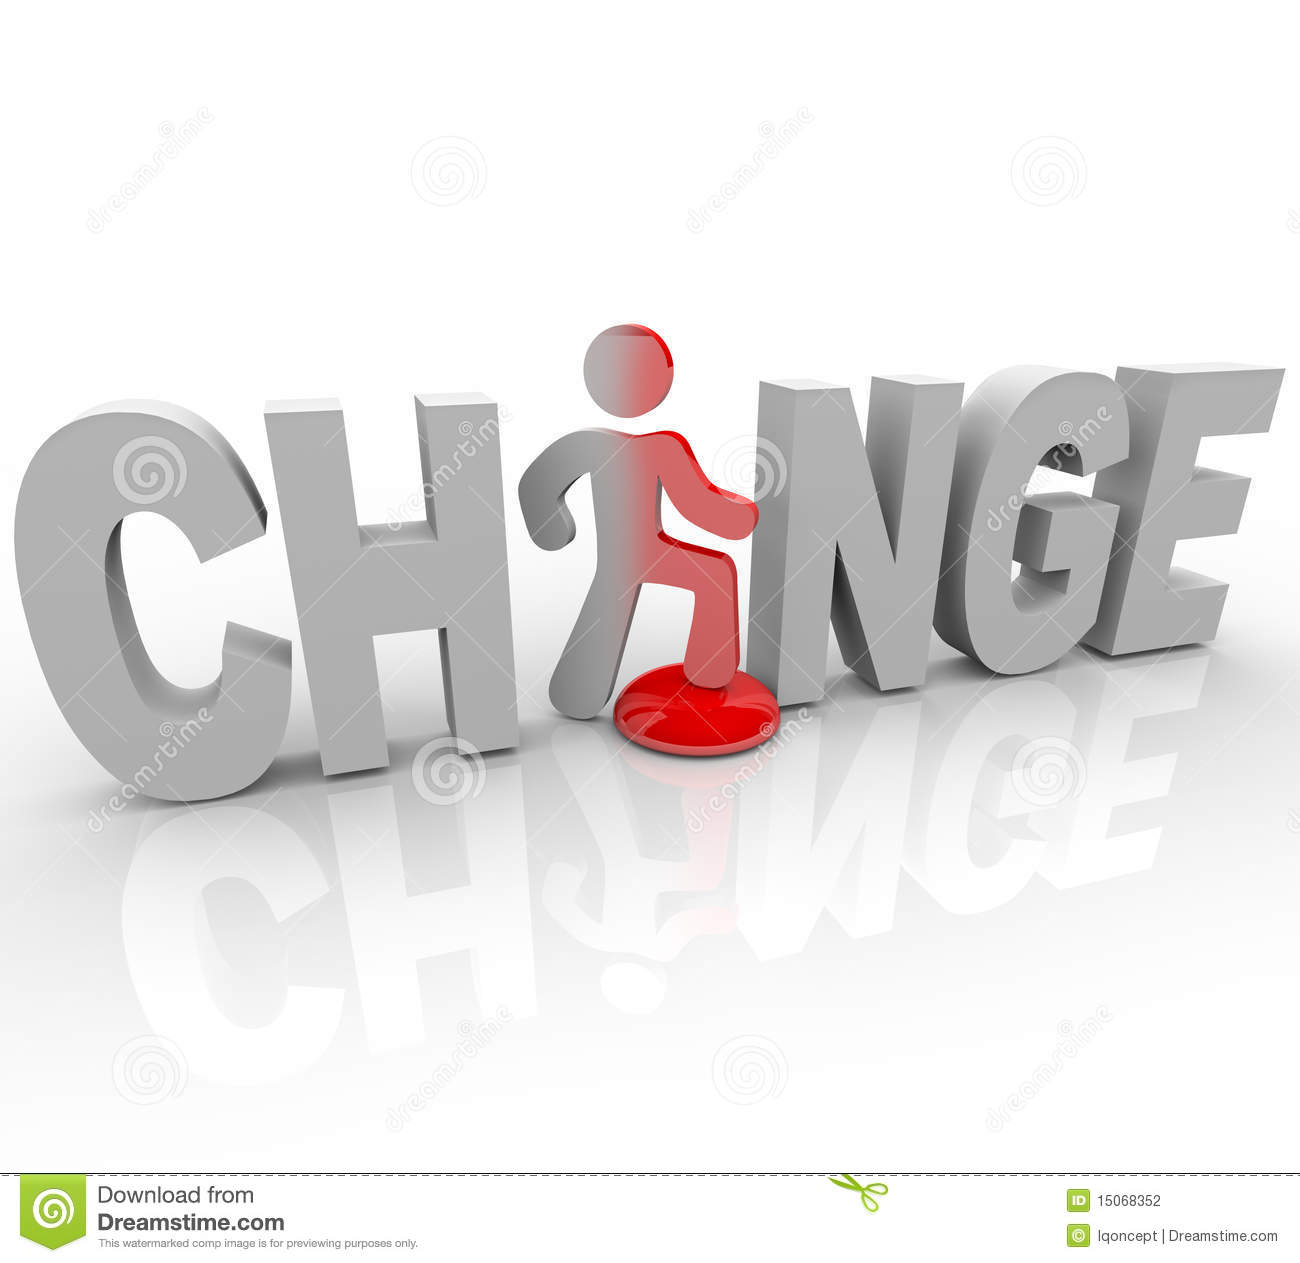 Change man in word steps on button stock illustration change man in word steps on button buycottarizona